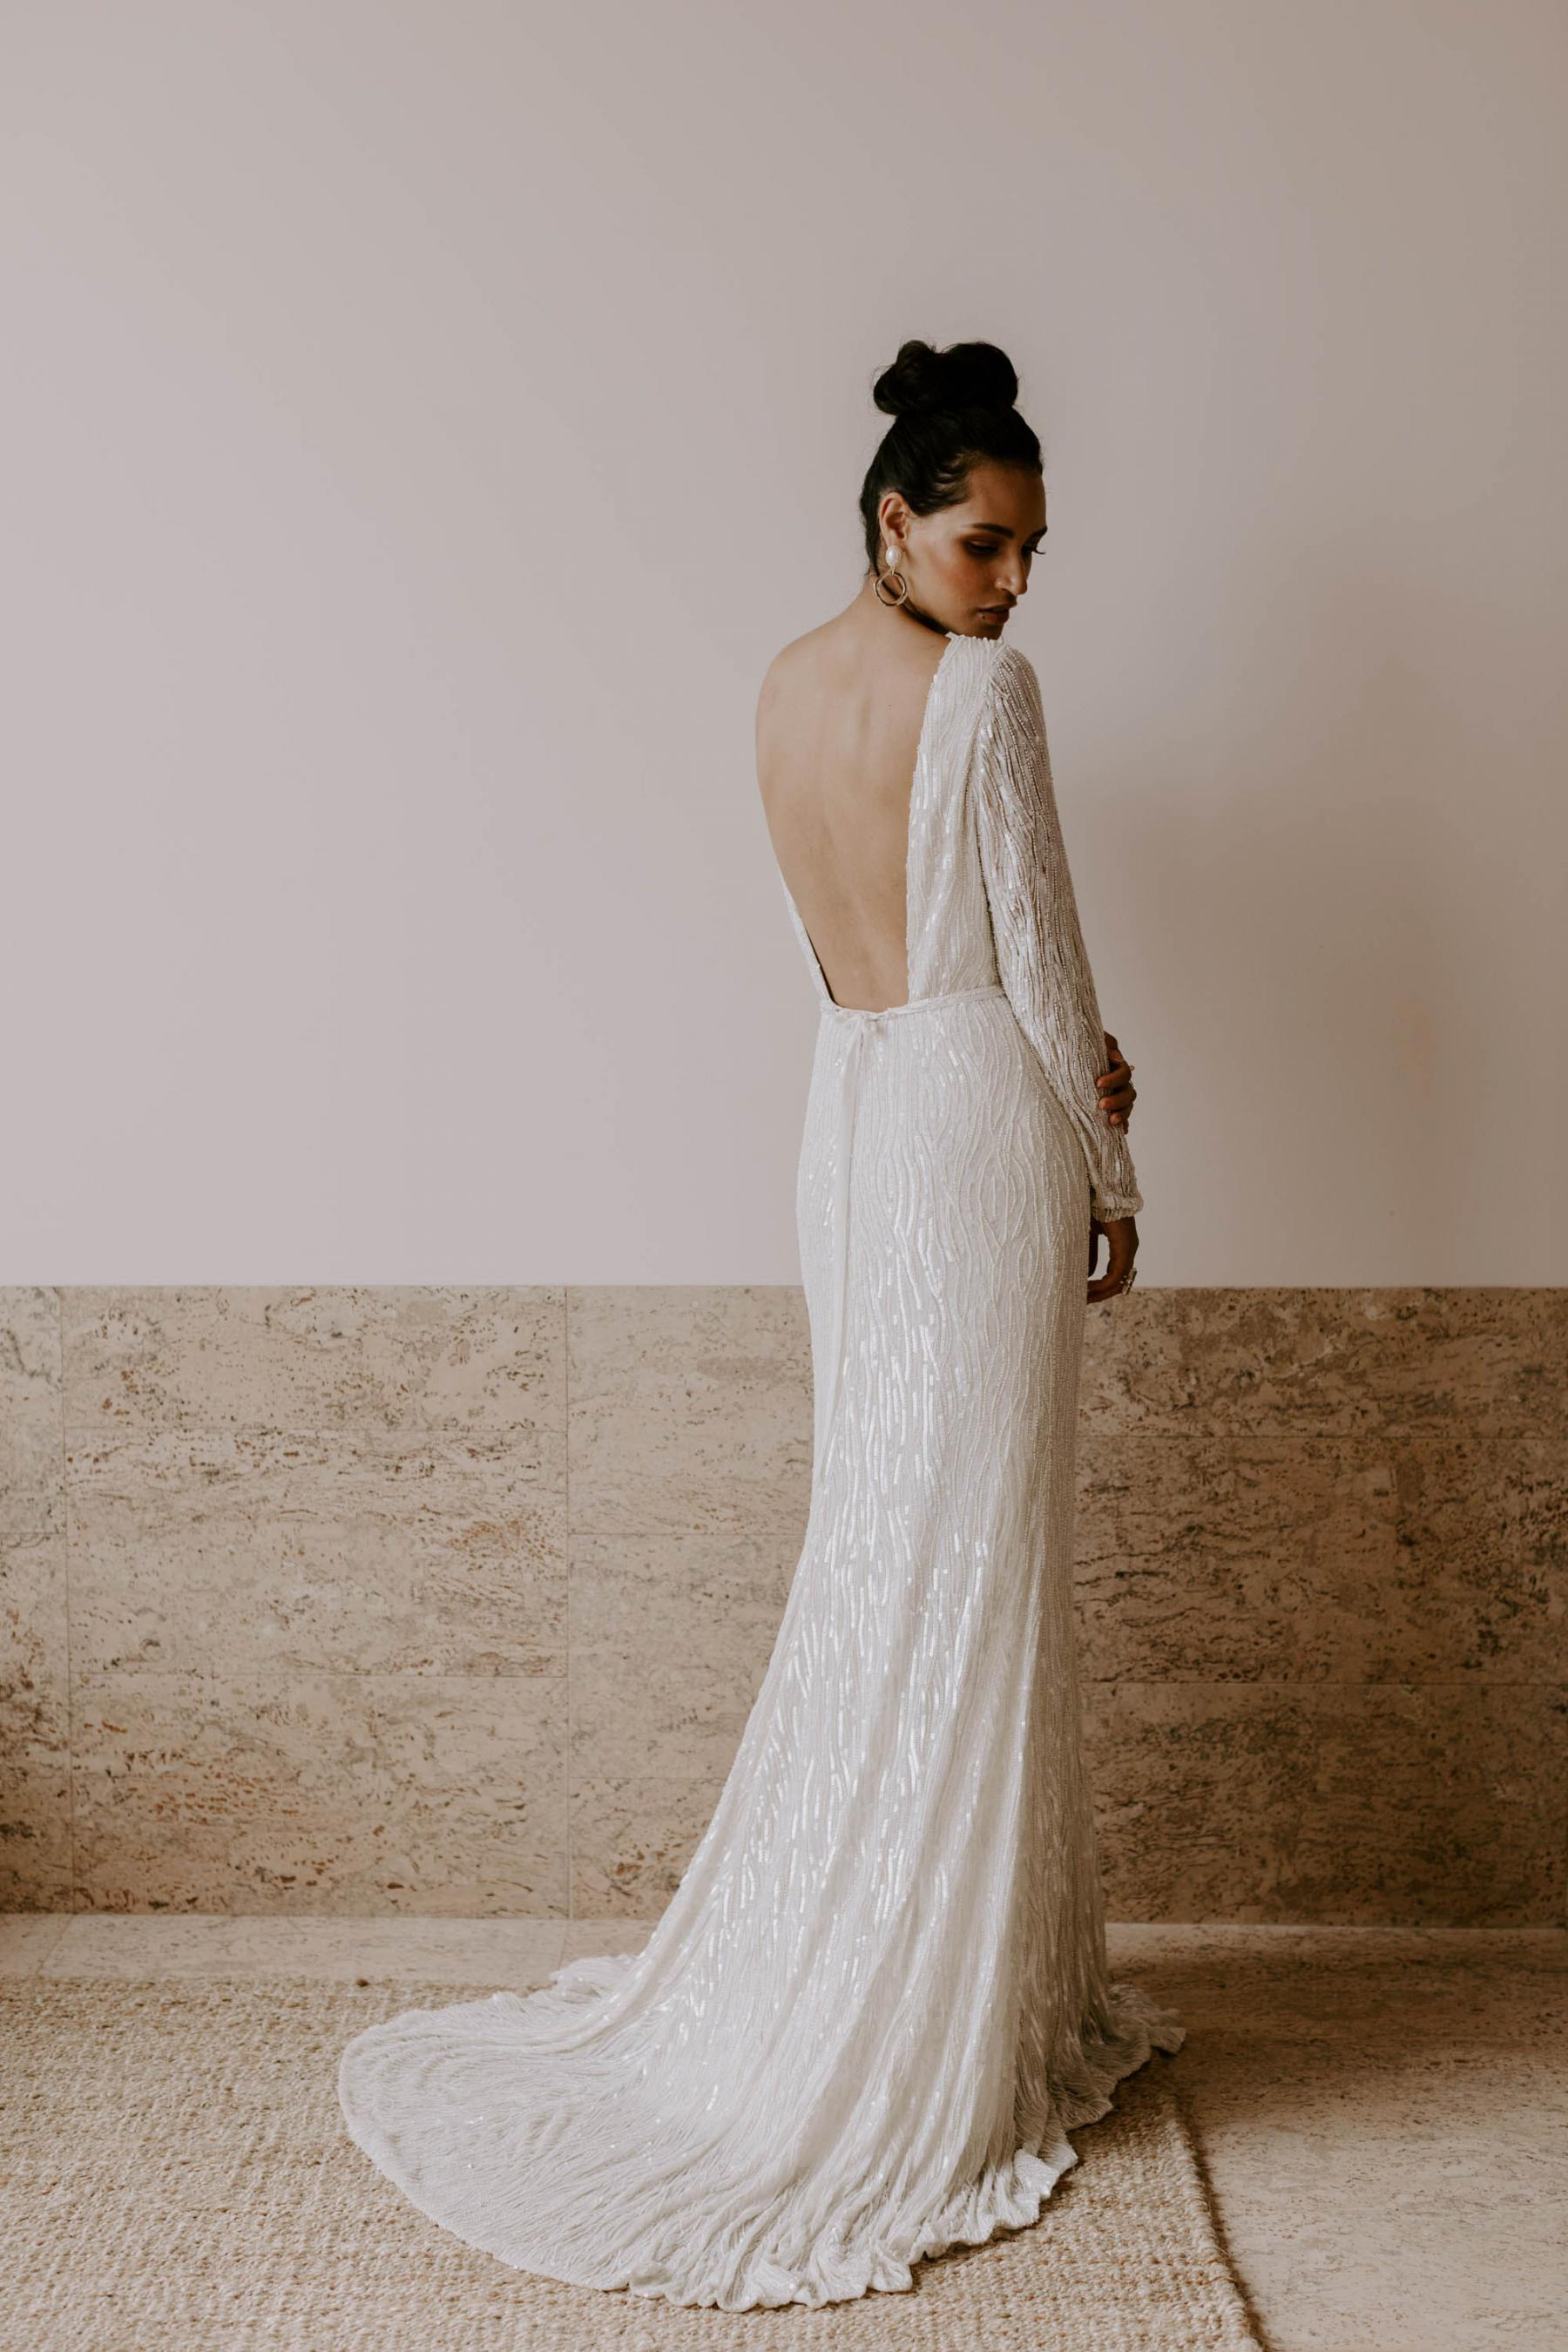 Sequin Wedding Dress by KAREN WILLIS HOLMES | 10 wedding dresses for the non-traditional bride | LOVE FIND CO.